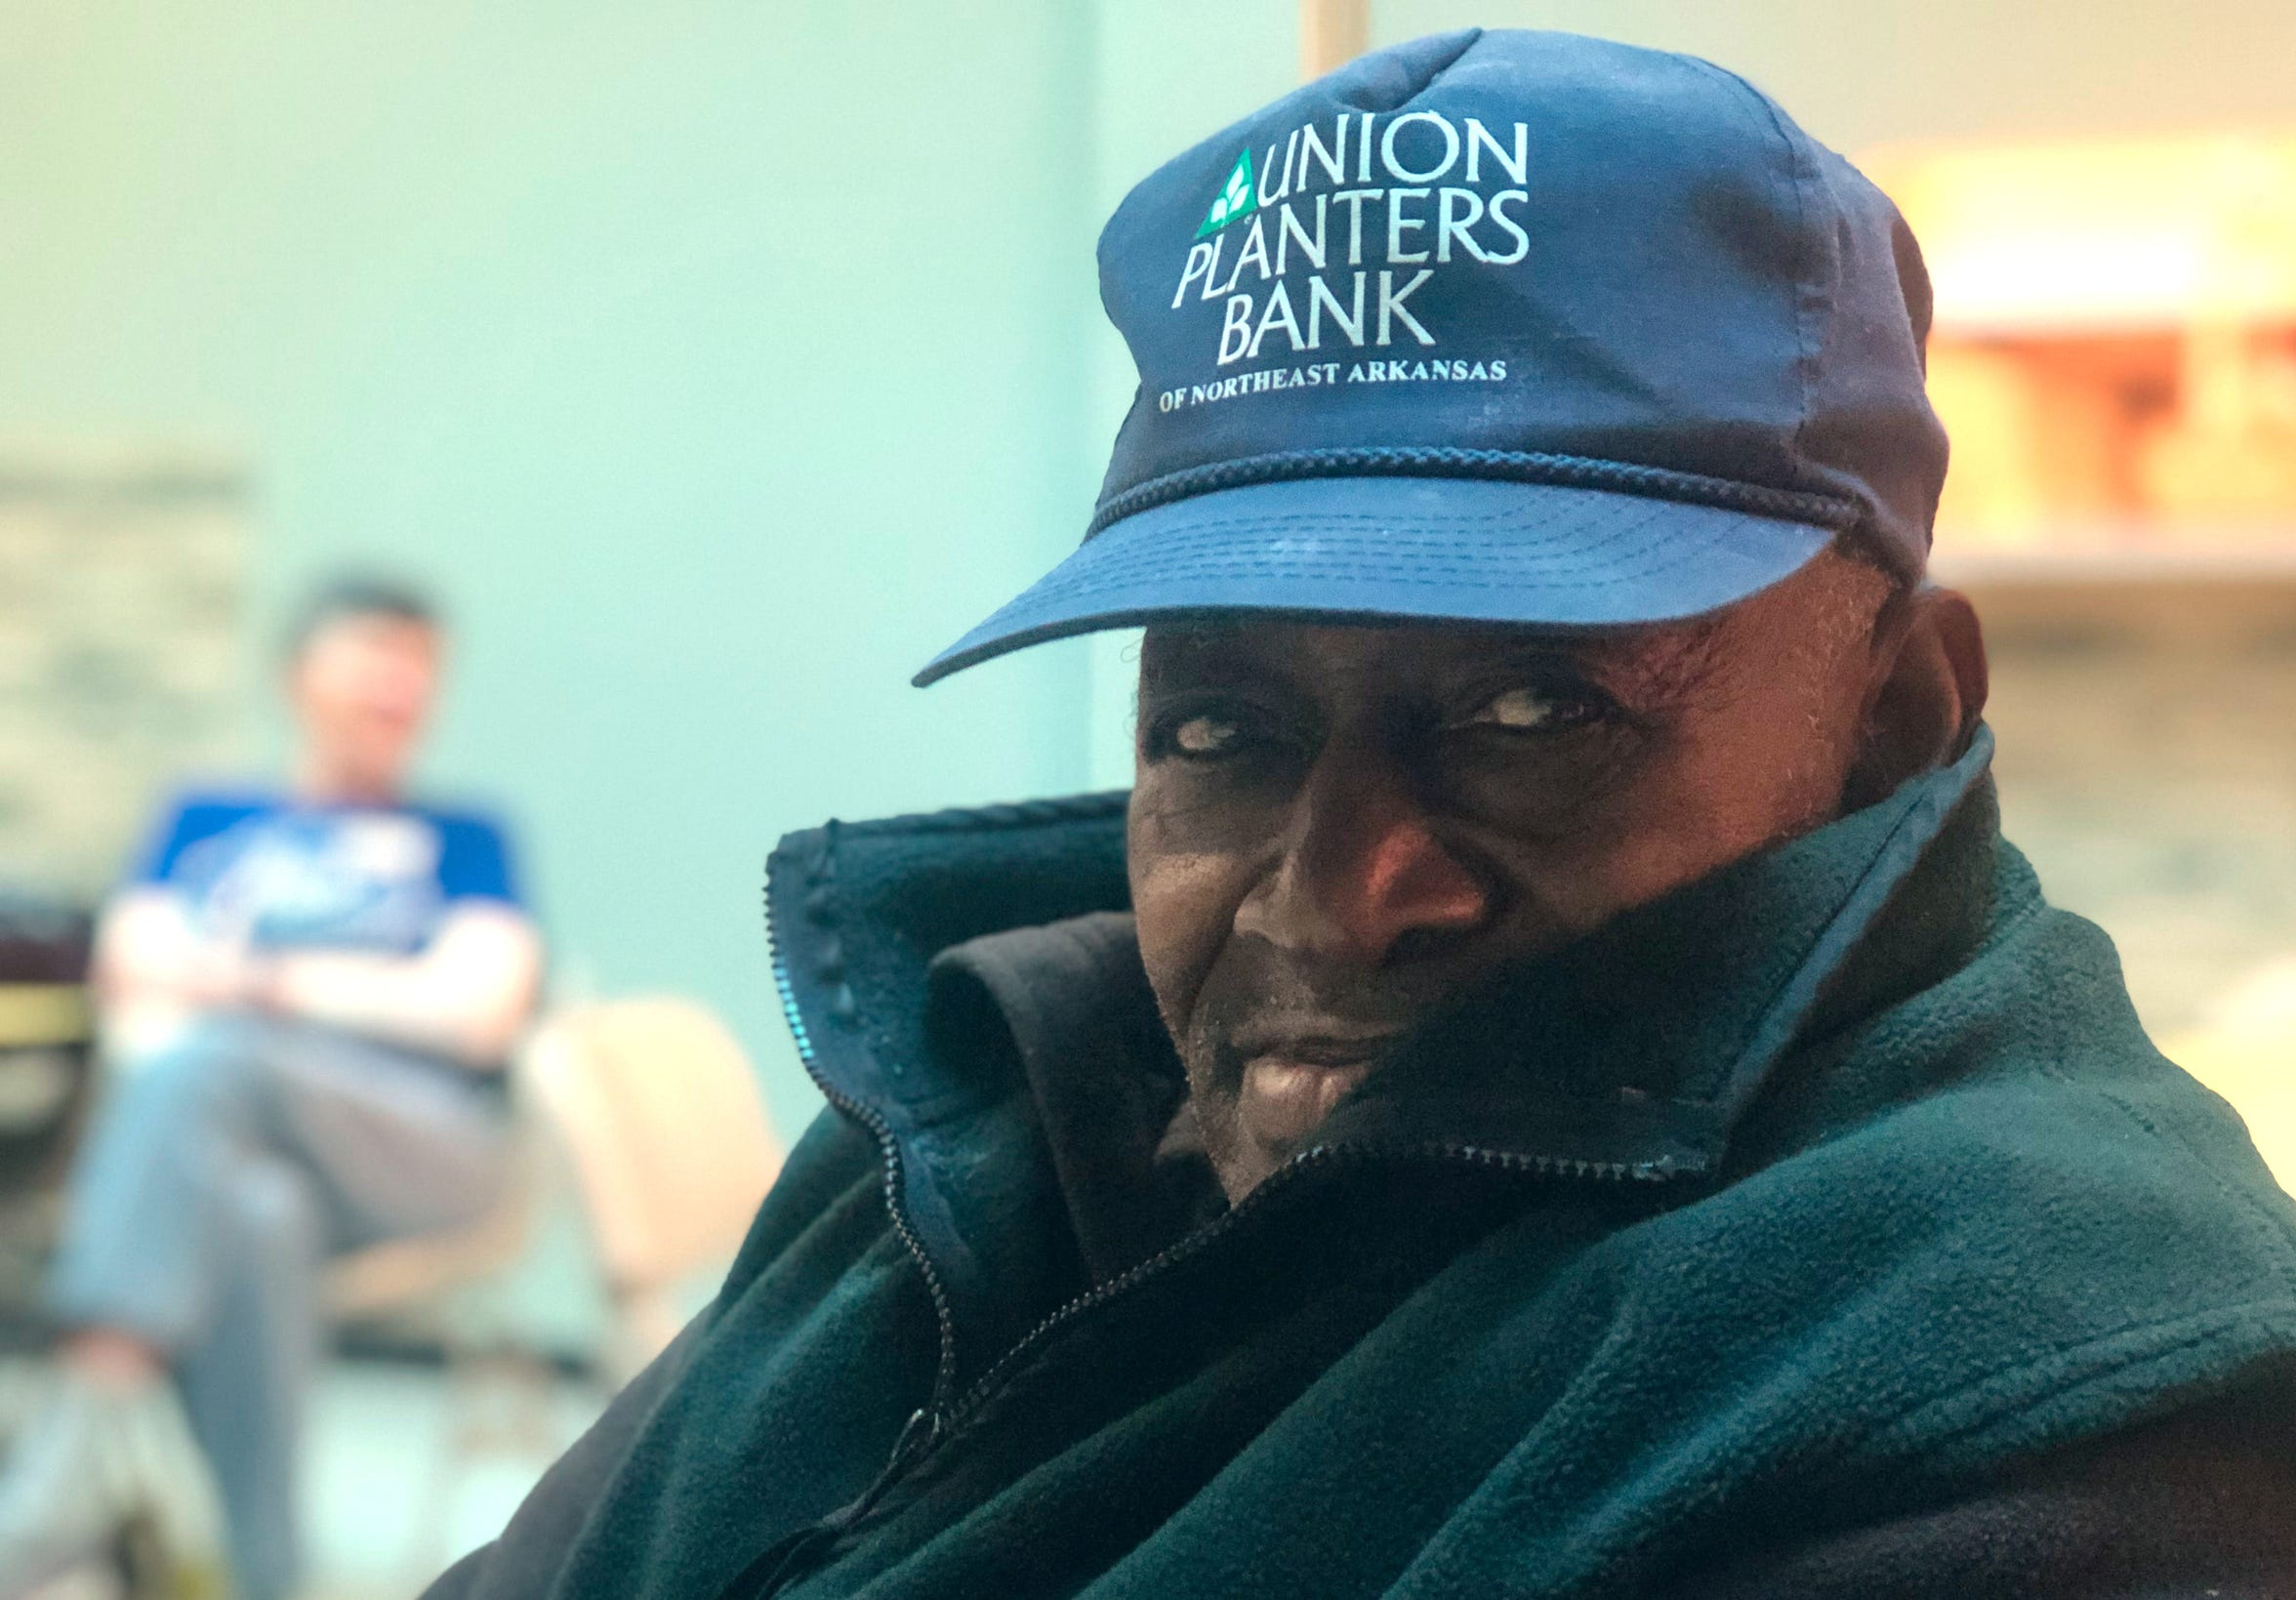 Roger Smith, 86, regularly seeks shelter through Room in the Inn, which does not have the capacity to place him every night. The previous evening, Smith slept in a chair at a warming center opened by the city of Memphis.